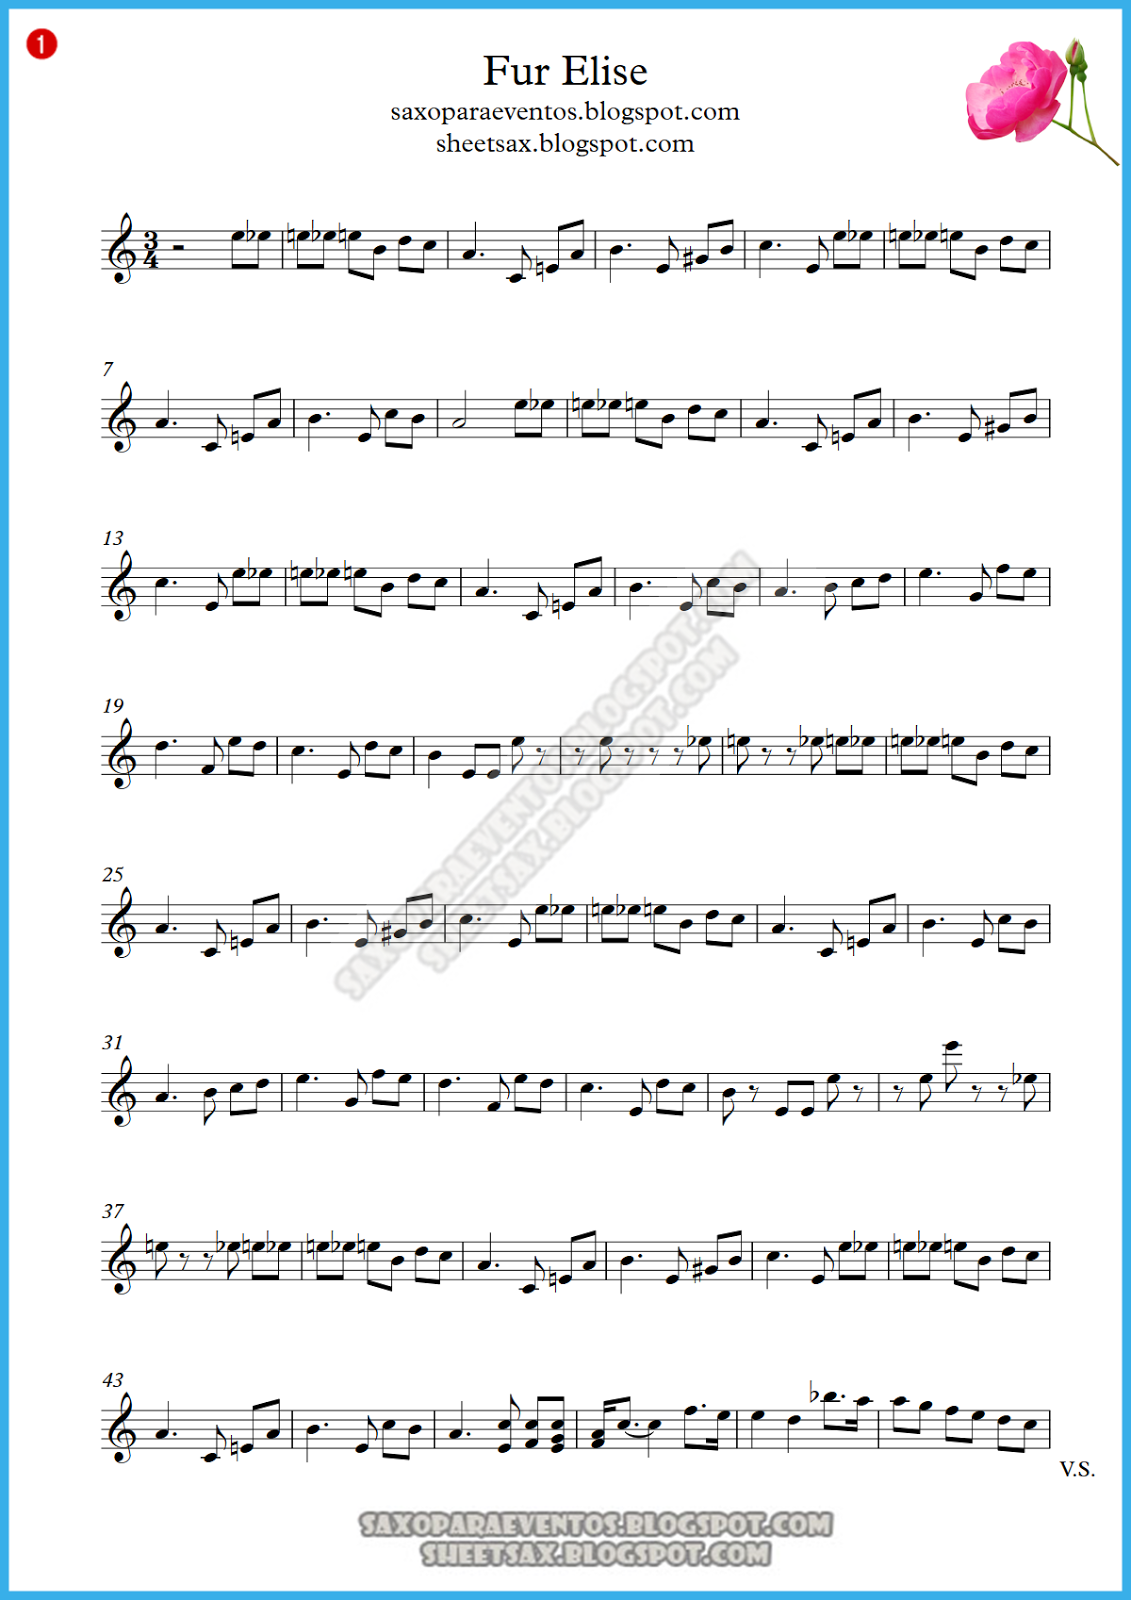 Fur Elise Free Sheet Music With Letters